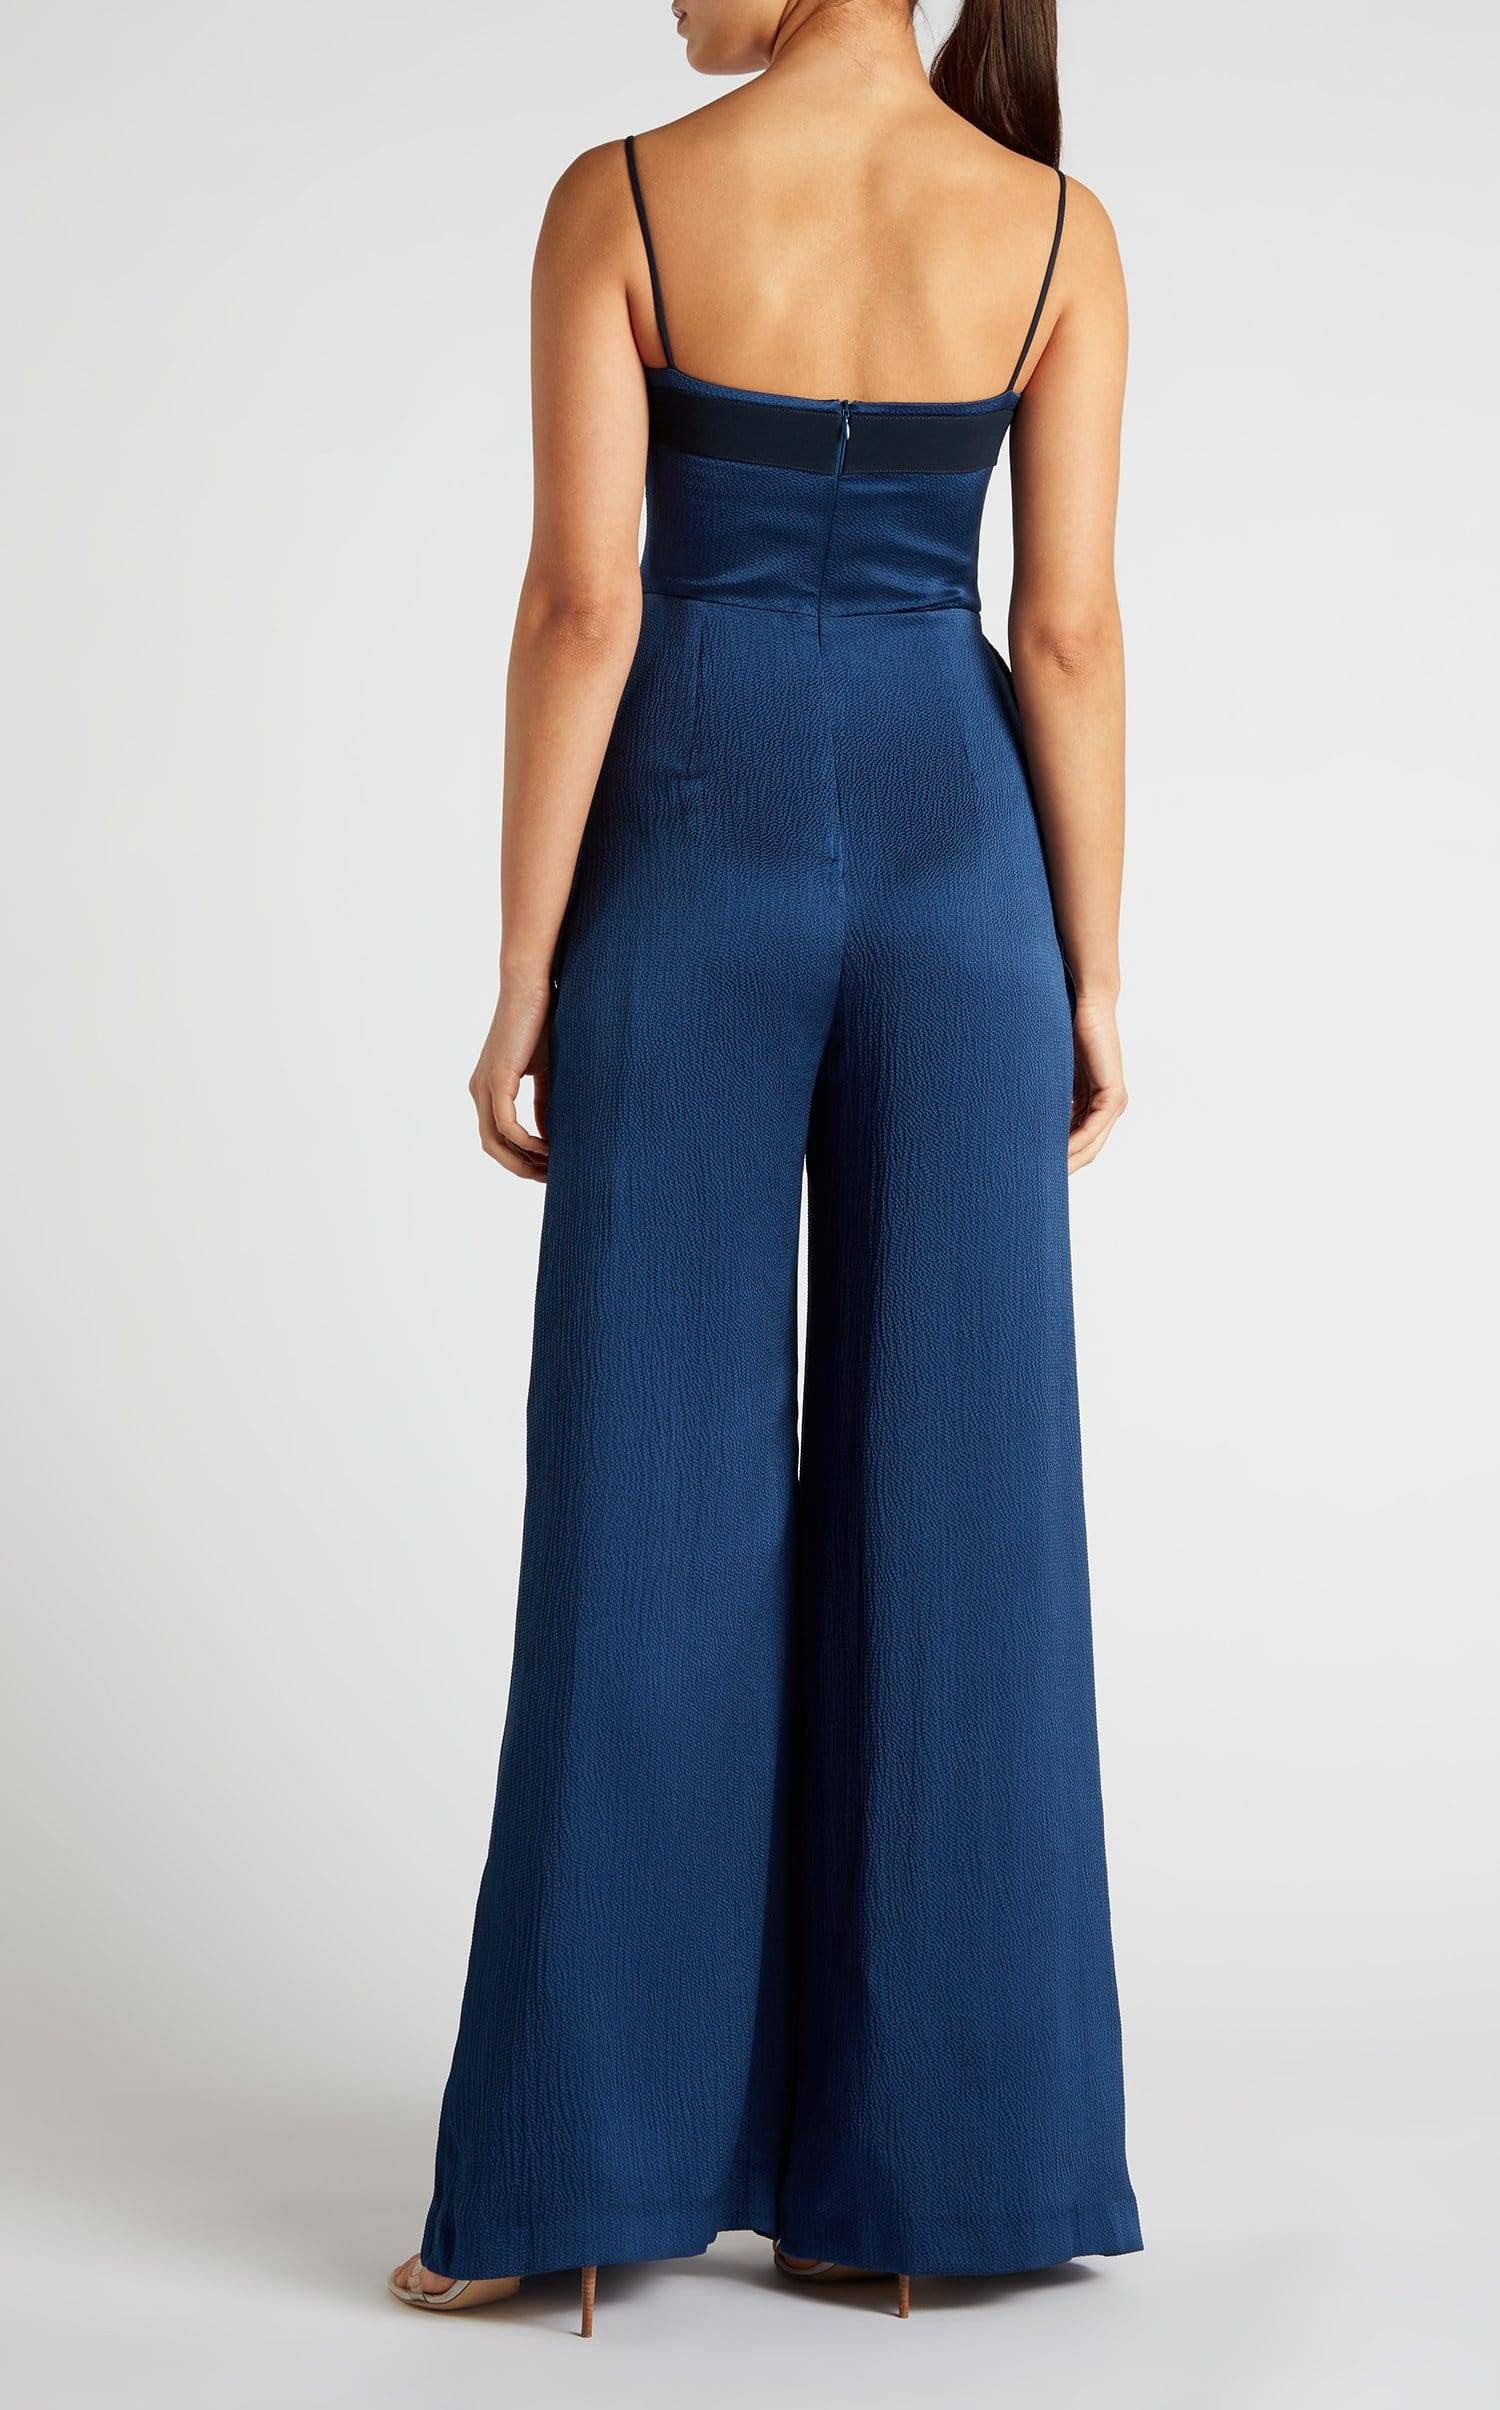 Primrose Jumpsuit In Ultramarine/Navy from Roland Mouret